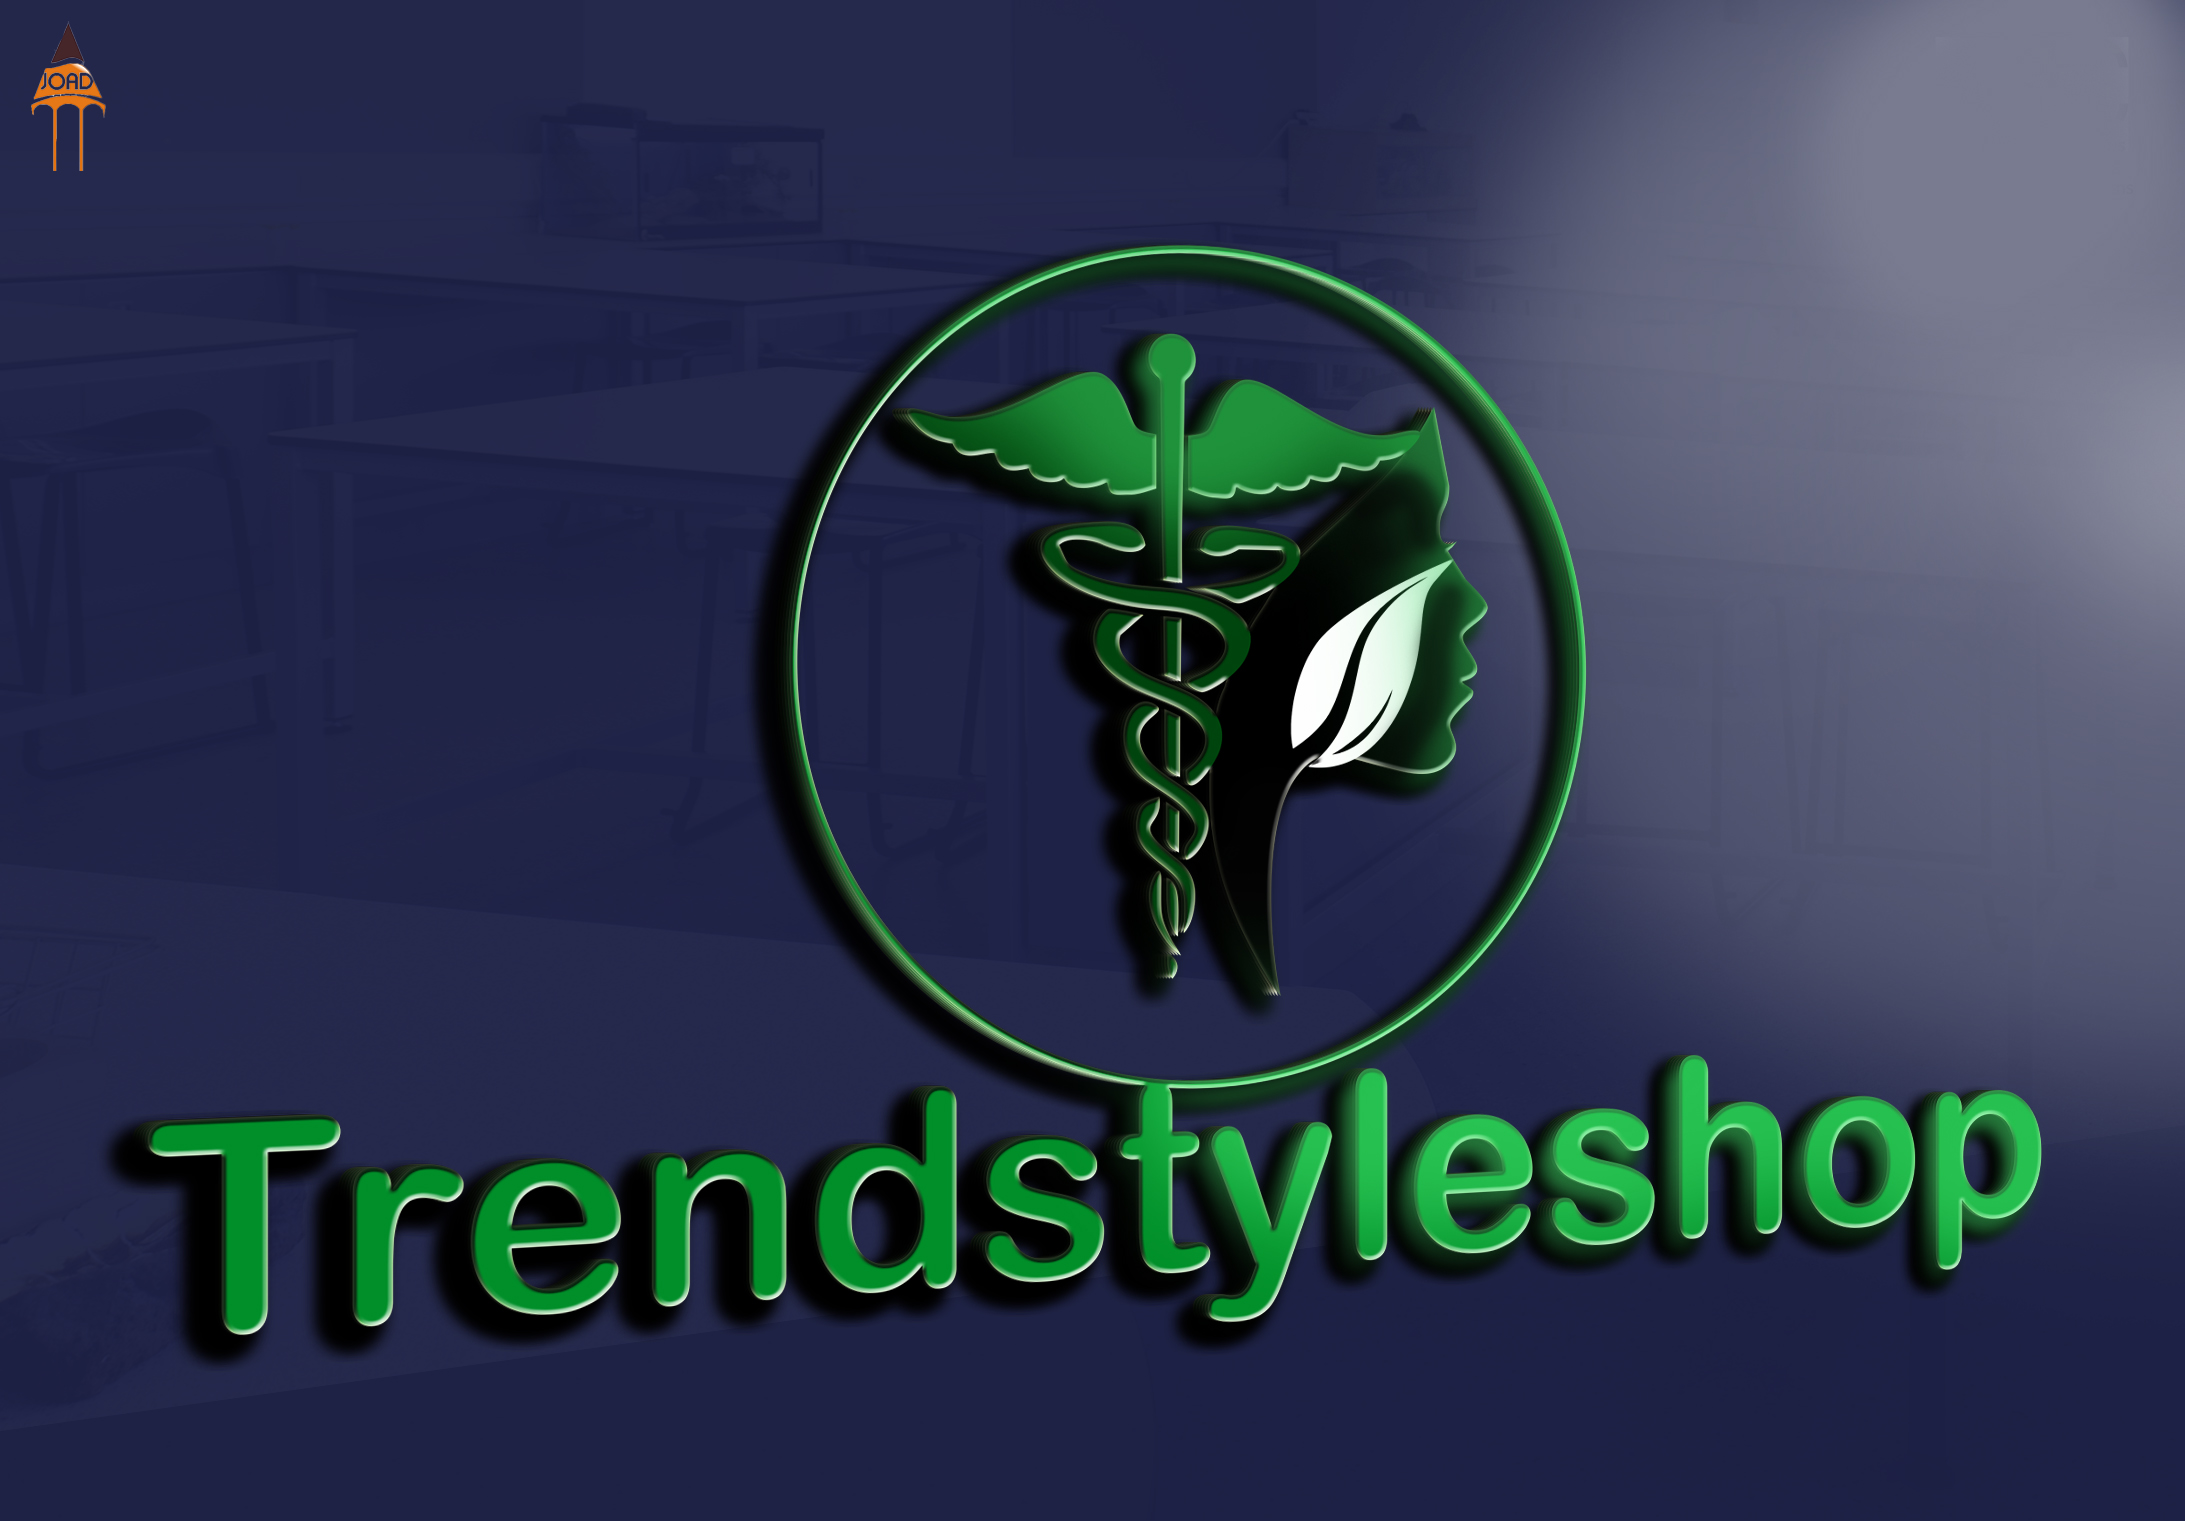 Amazing logo design for you right here